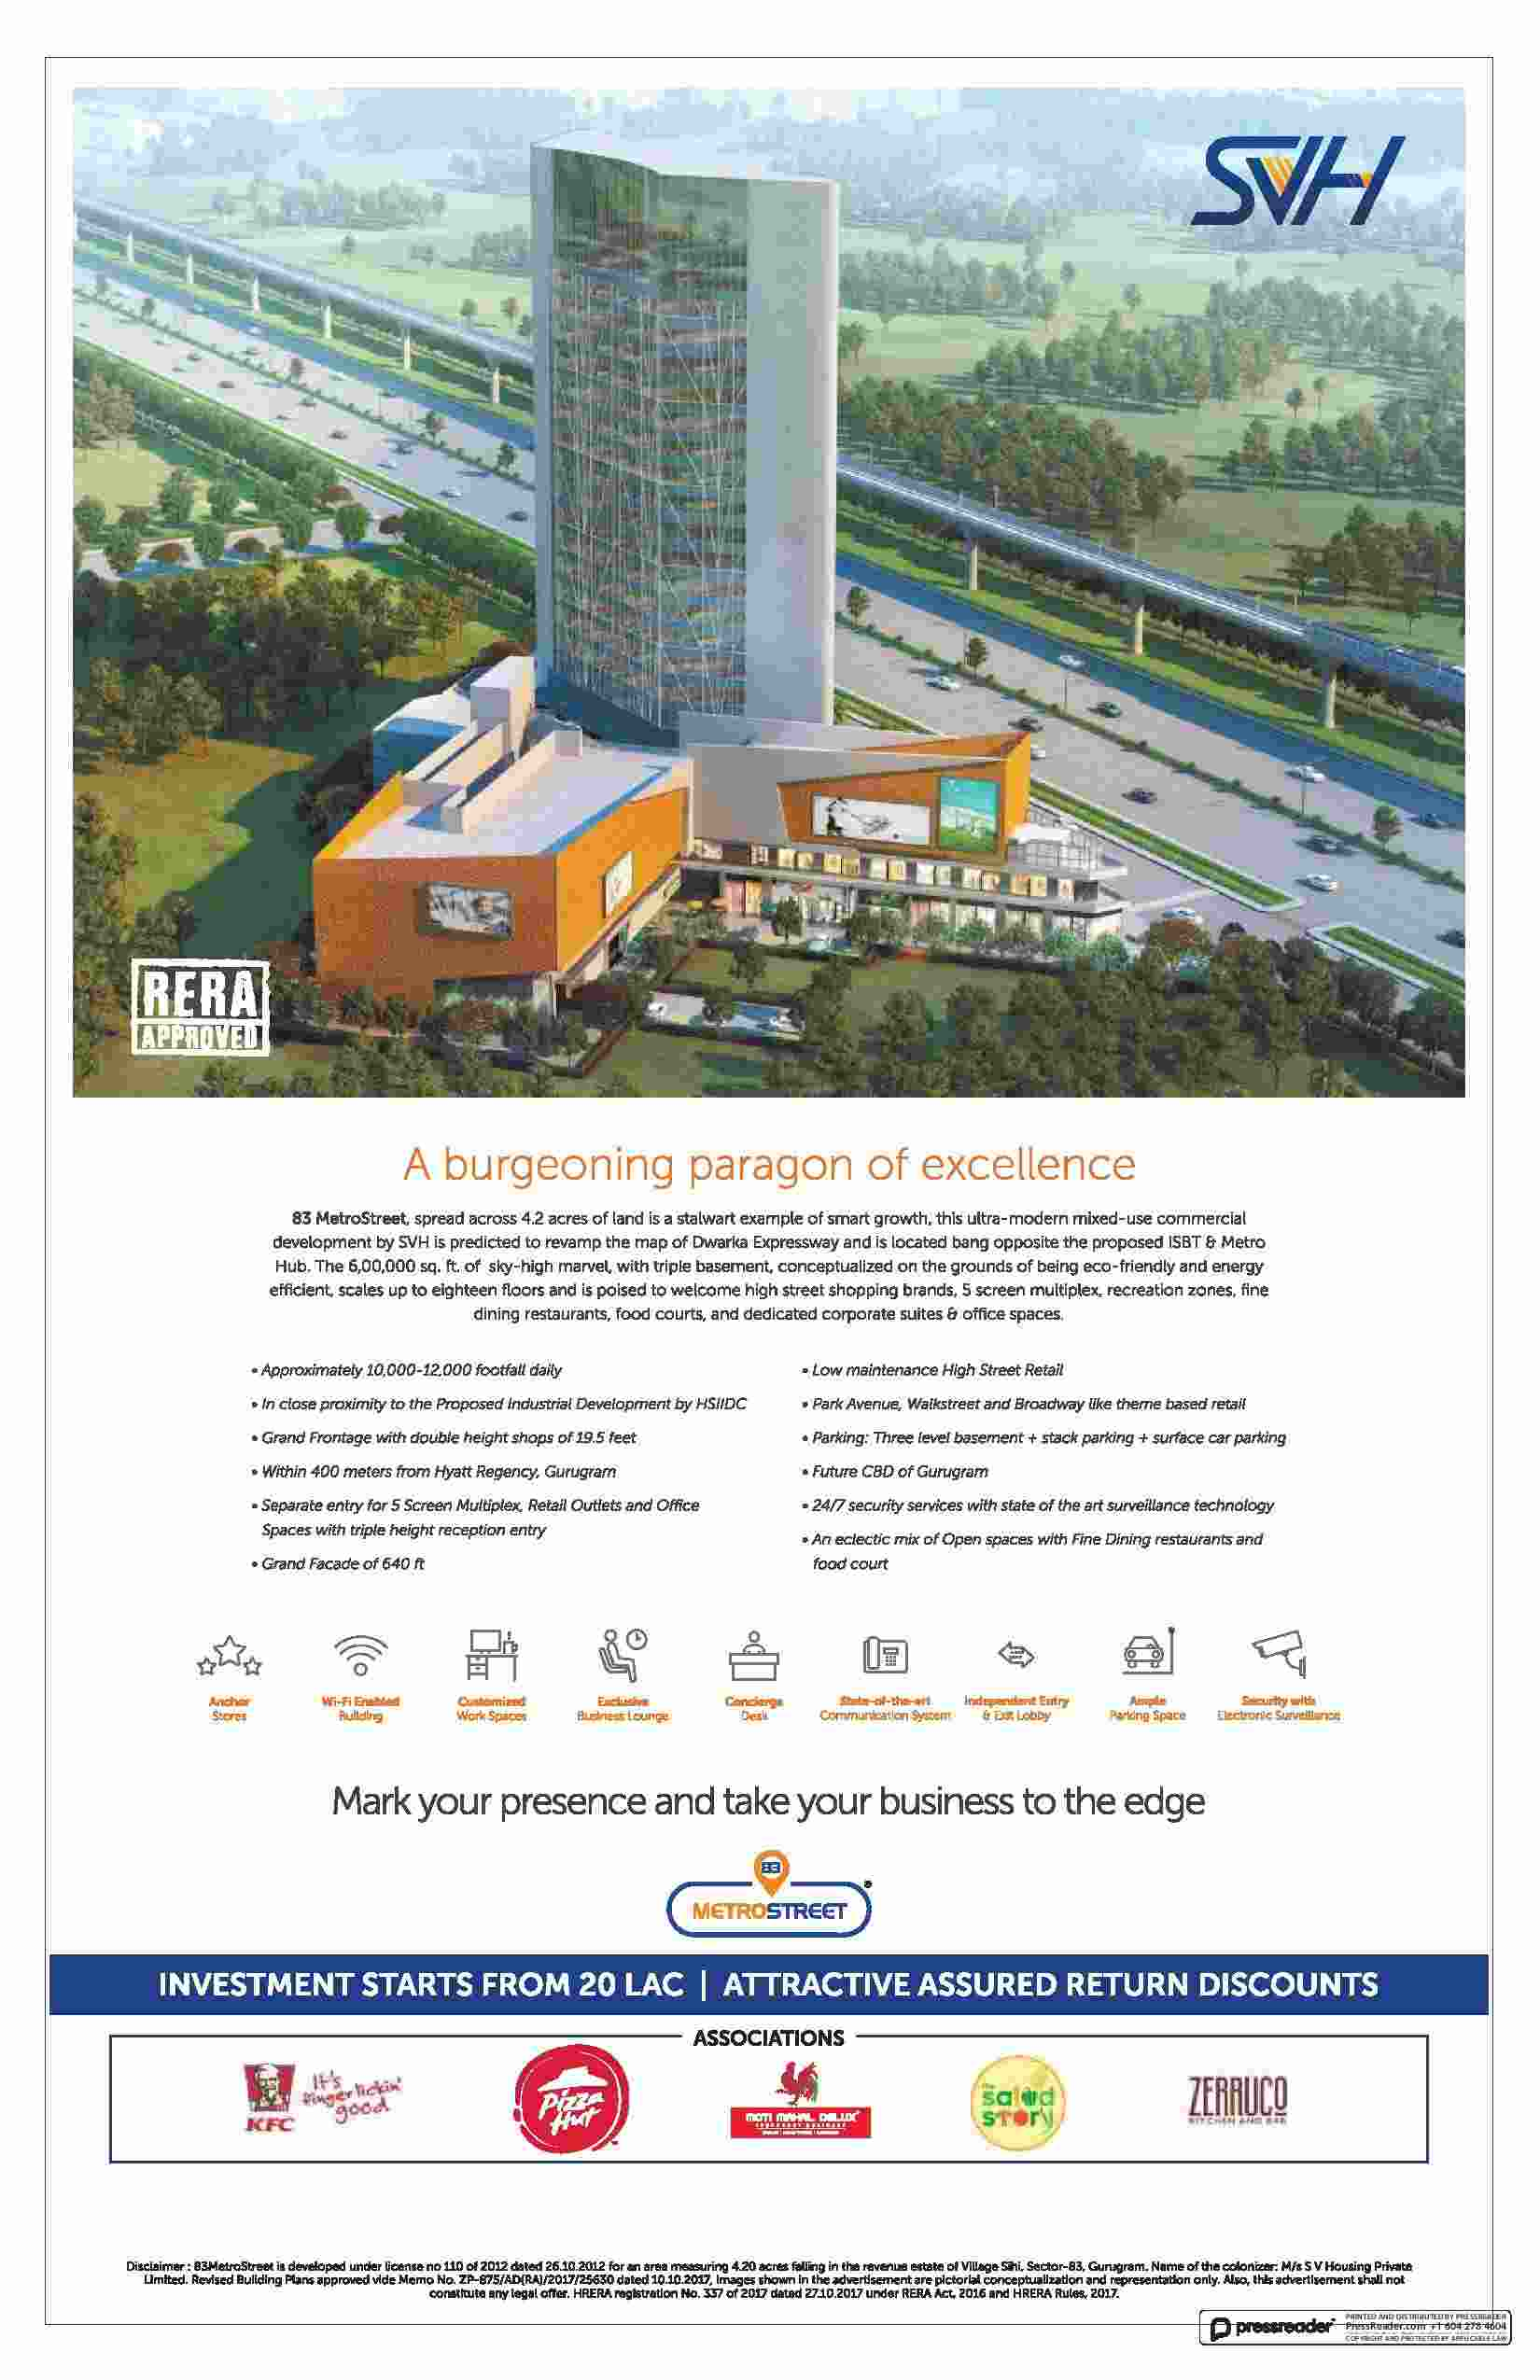 Make your presence take your business to the edge at SVH 83 Metro Street in Gurgaon